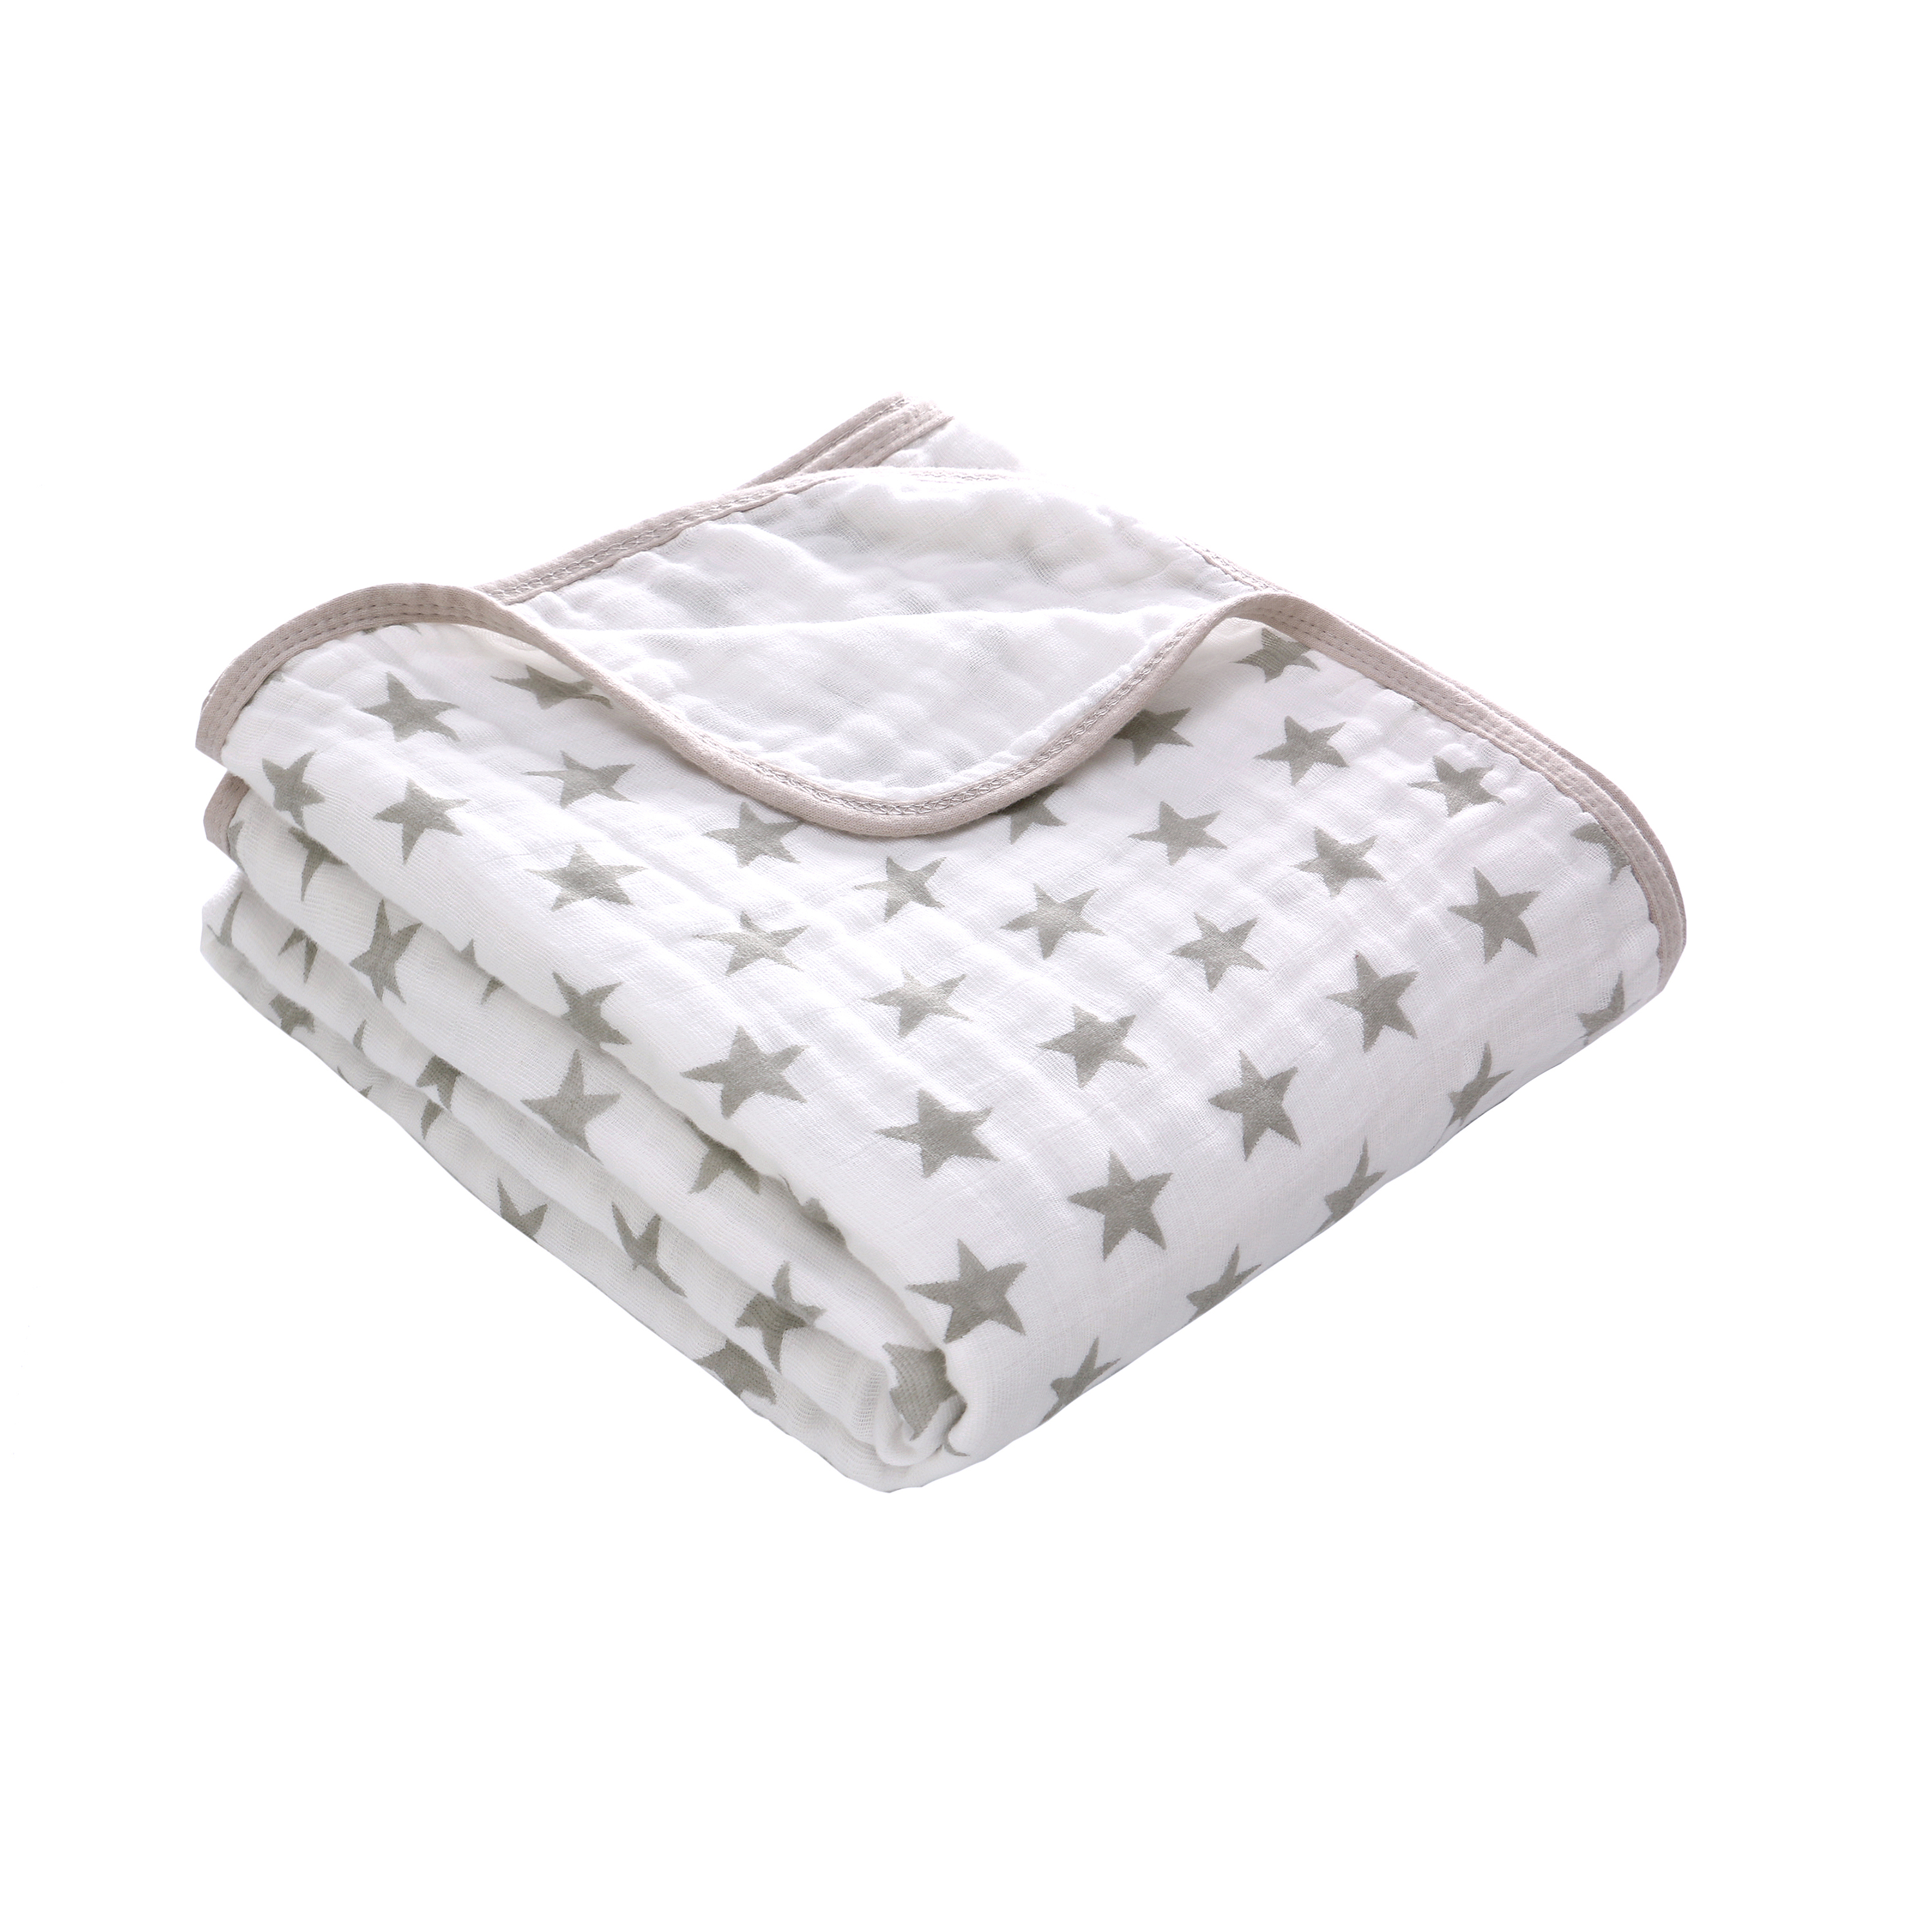 2 Layers Blanket Swaddleing Infant Cotton Bedding Sheet Muslin Travel Blanket For Babies For Newborn Double Layer Blanket